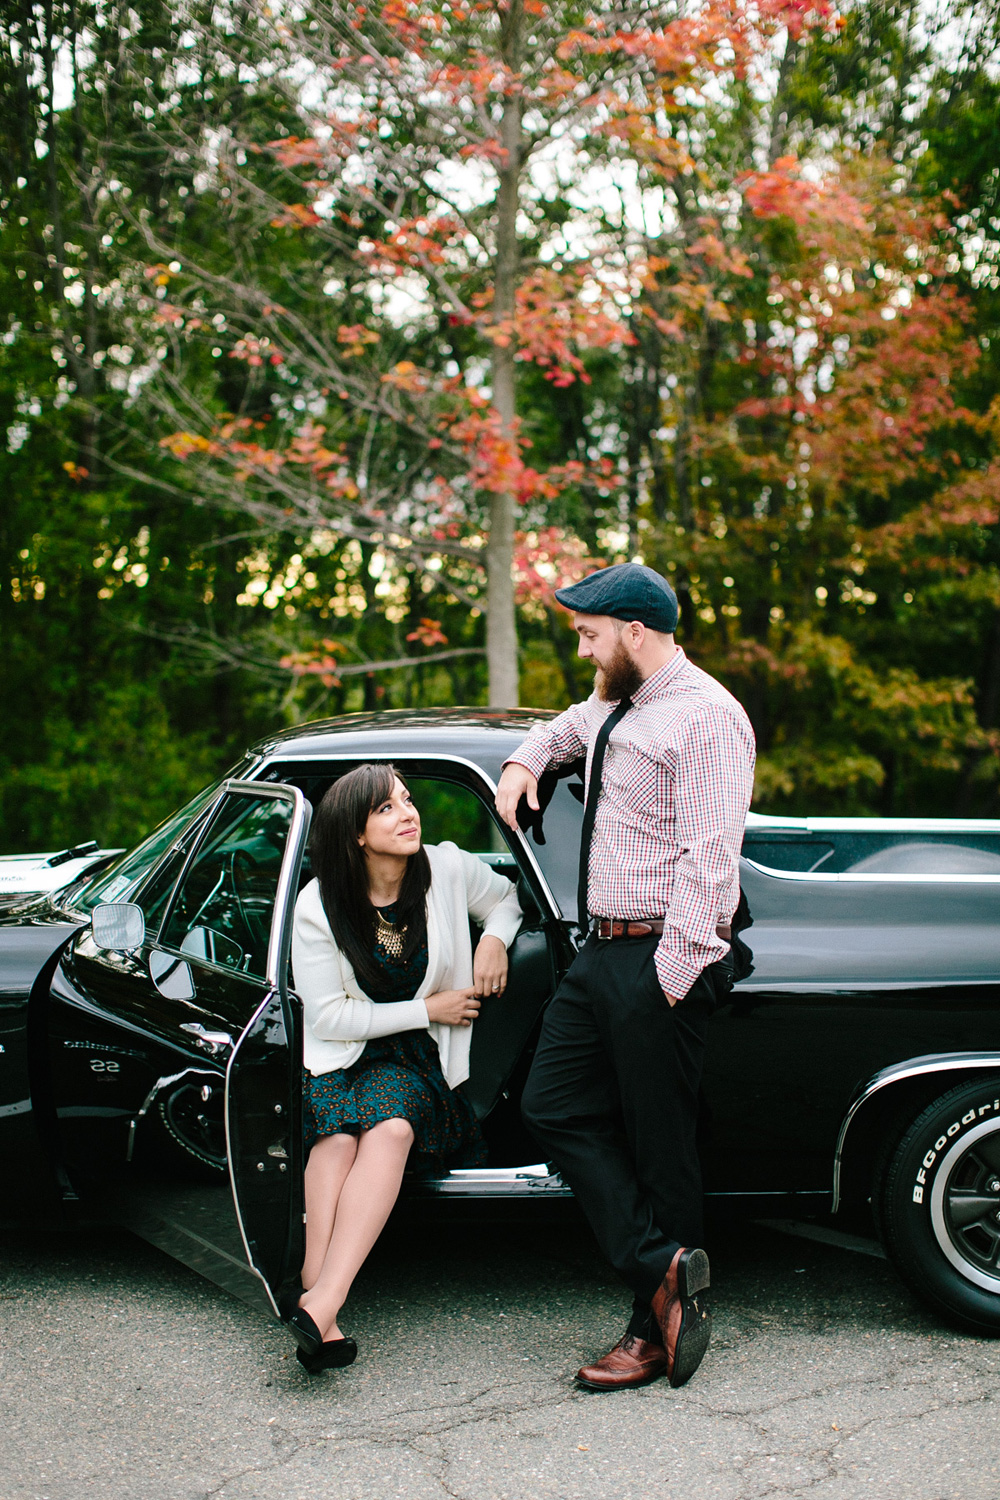 005-classic-car-engagement-session.jpg